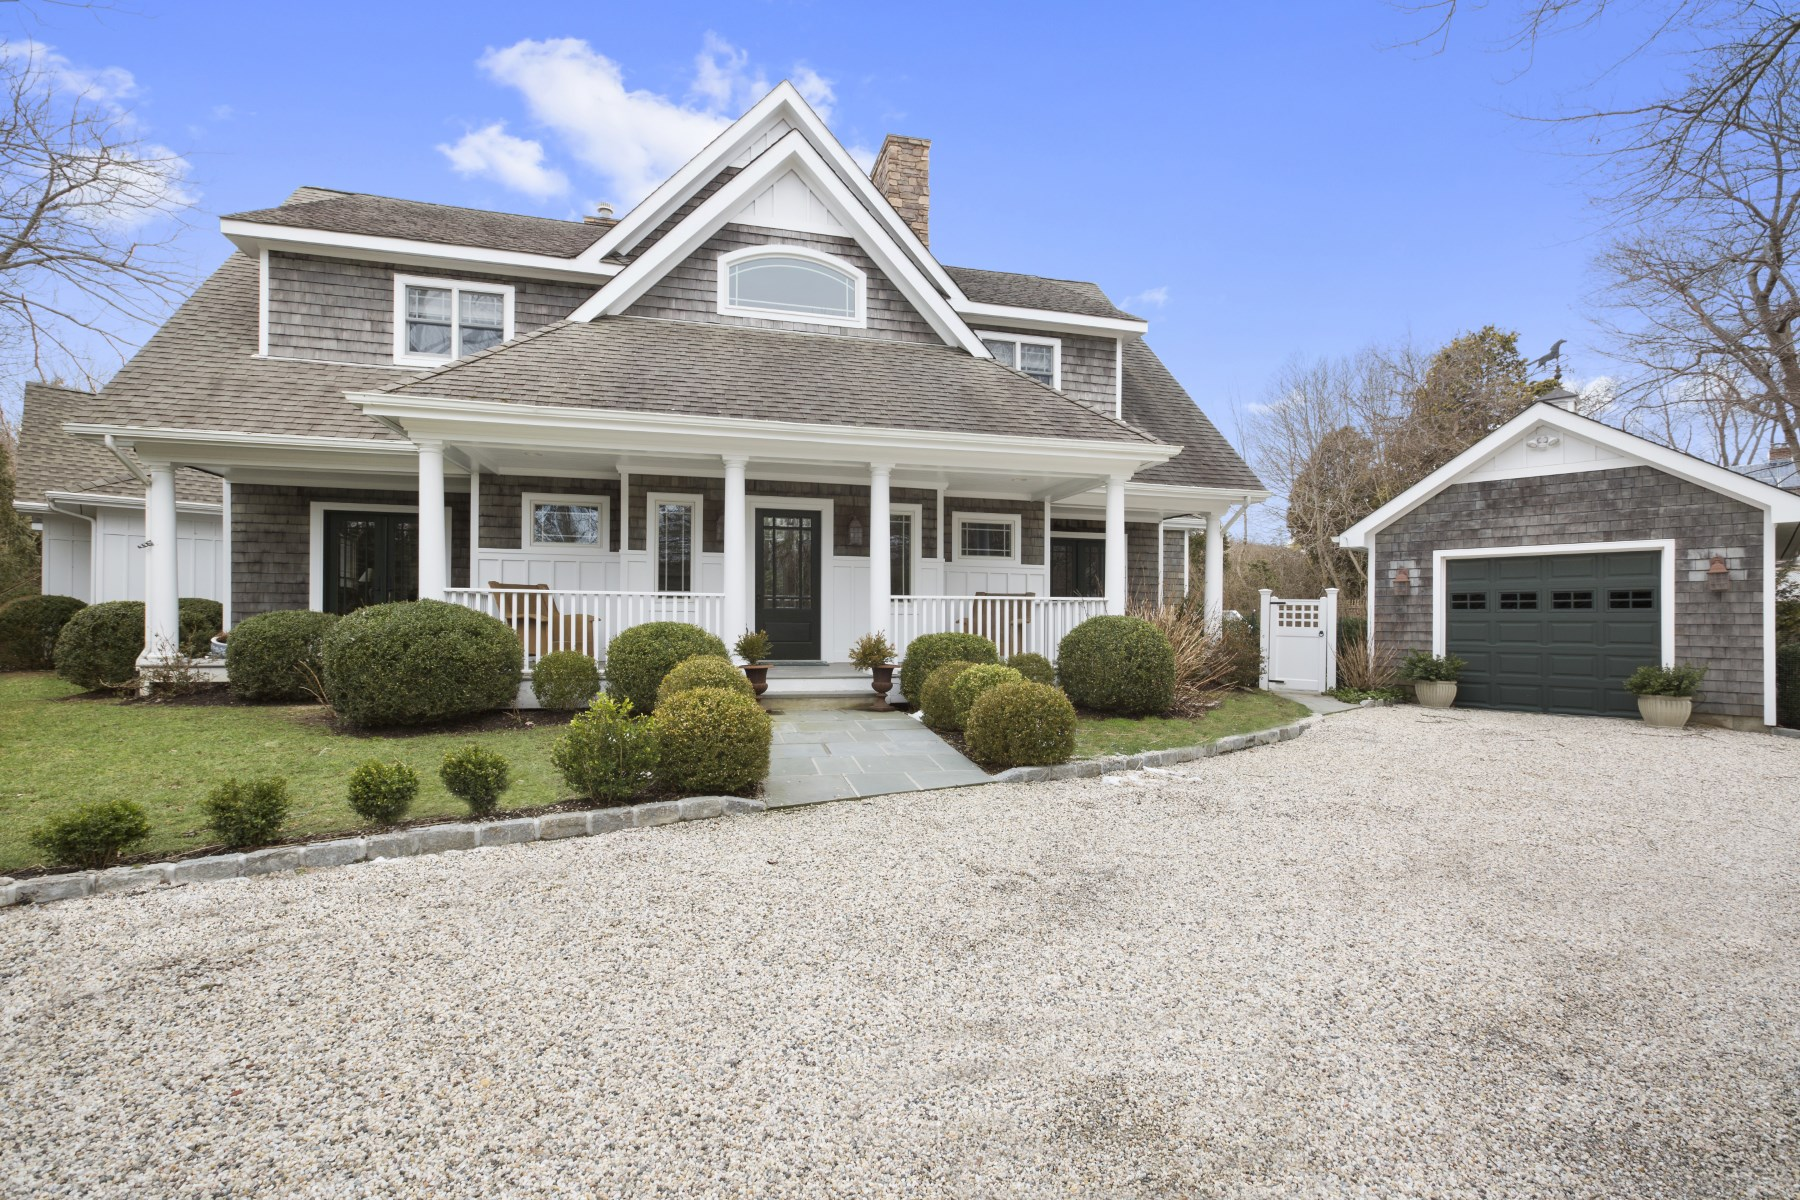 Single Family Home for Rent at Walk To The Village From This To Perfect East Hampton, New York 11937 United States